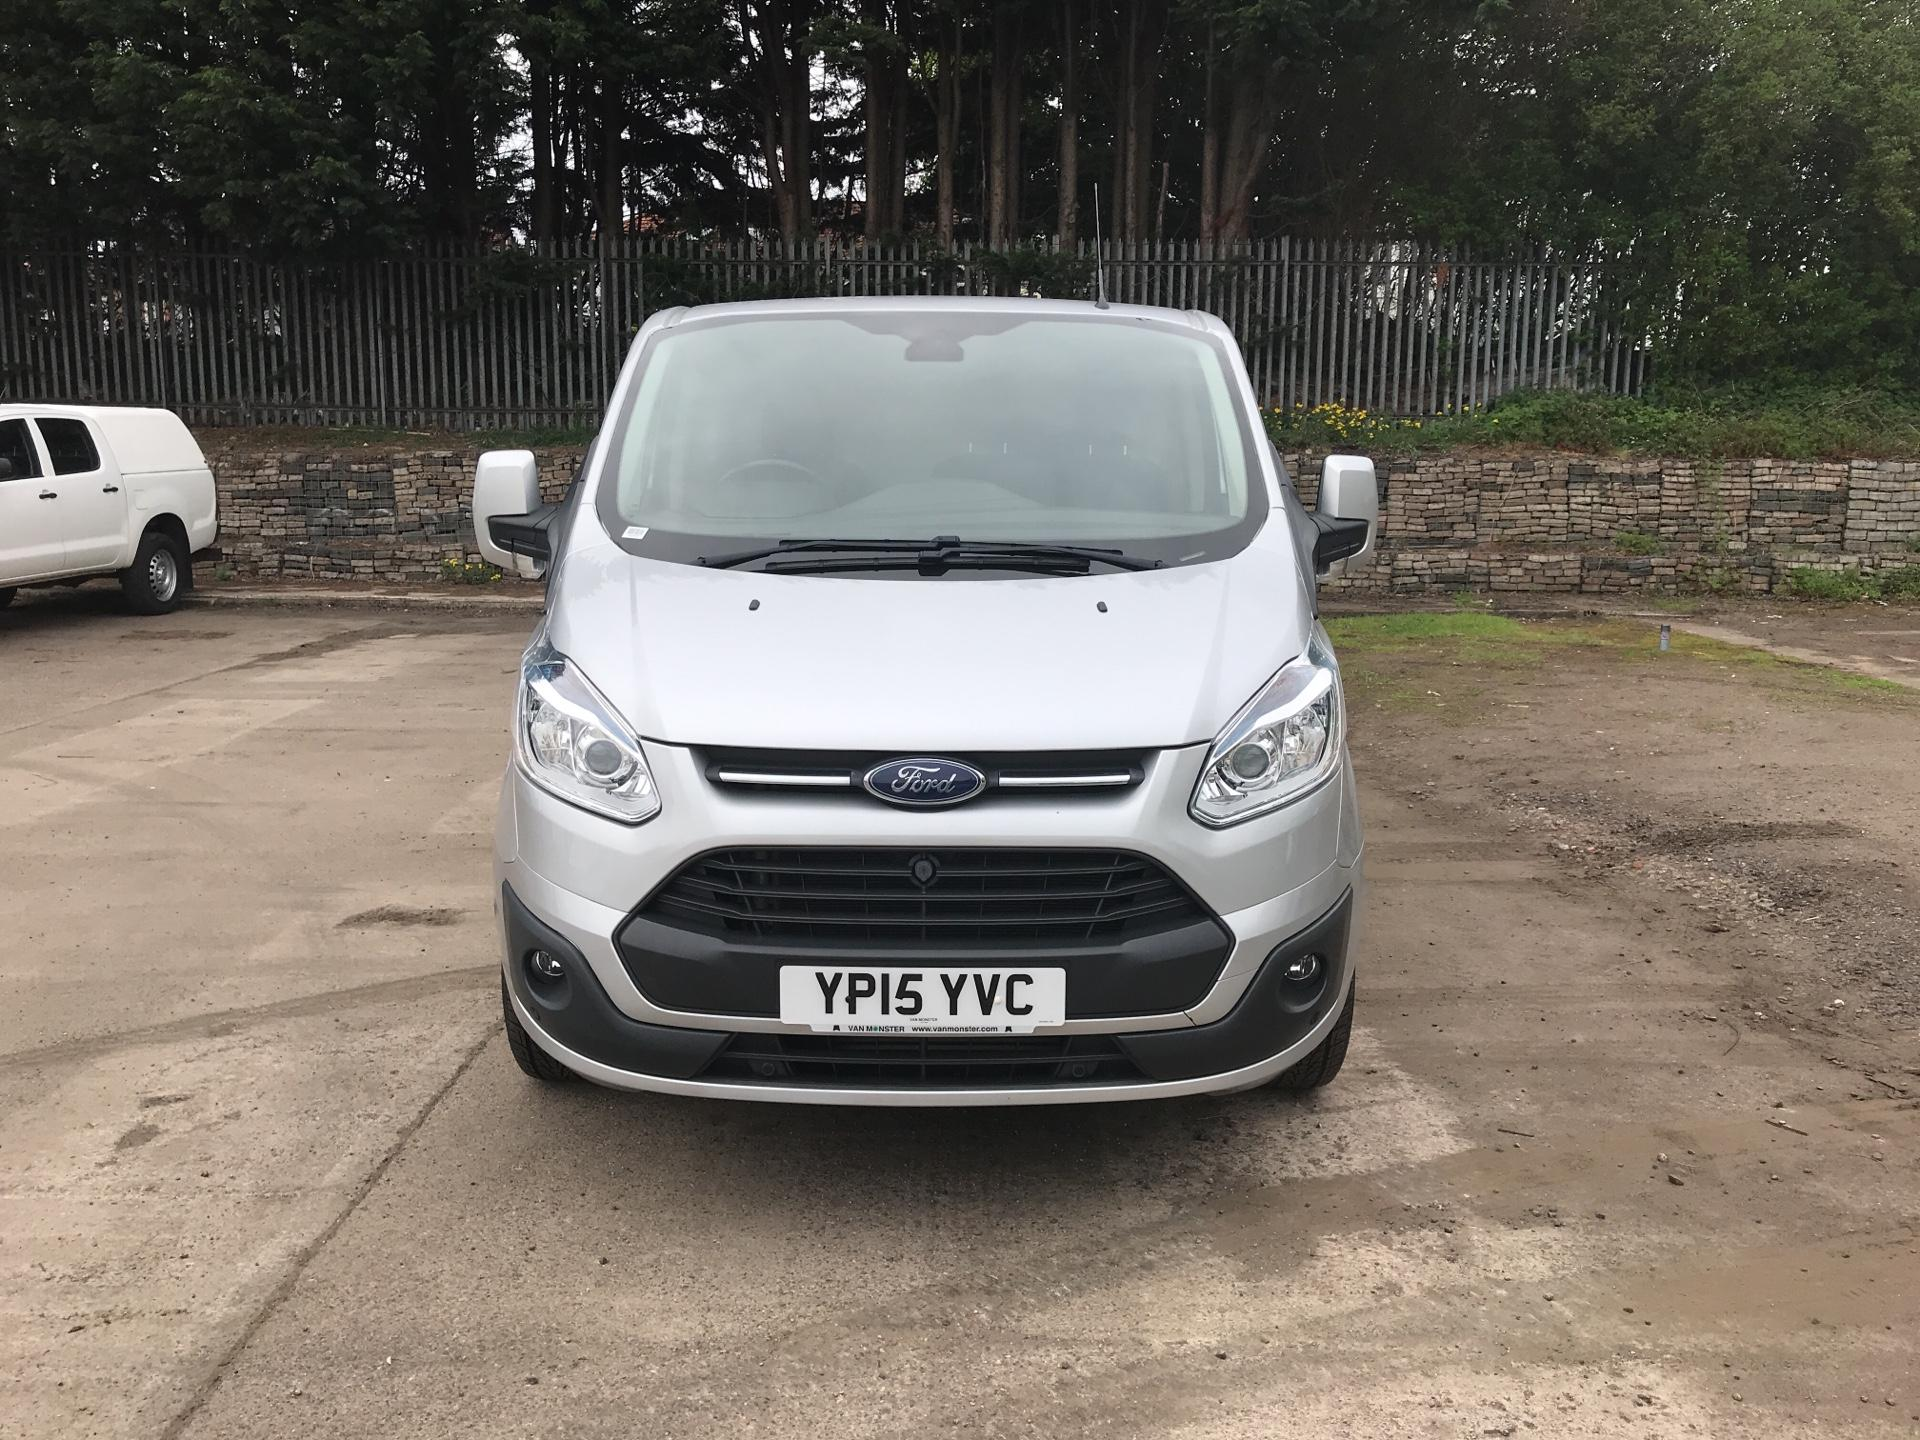 2015 Ford Transit Custom 290 L2 DIESEL FWD 2.2 TDCI 125PS LOW ROOF LIMITED VAN EURO 5 (YP15YVC) Image 8